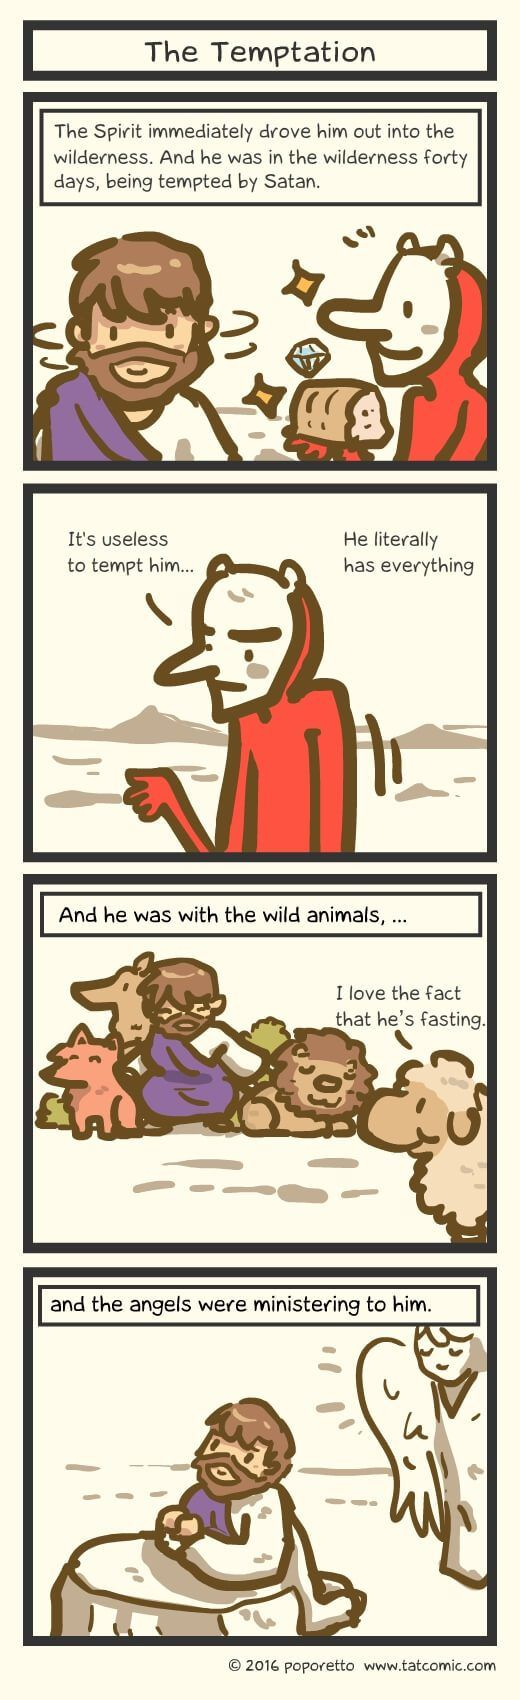 Christian Comic Strip The Gospel Of Mark Book Of Mark Jesus Tempted By The Demon In The Wilderness Christian Comics Jesus Tempted Gospel Of Mark